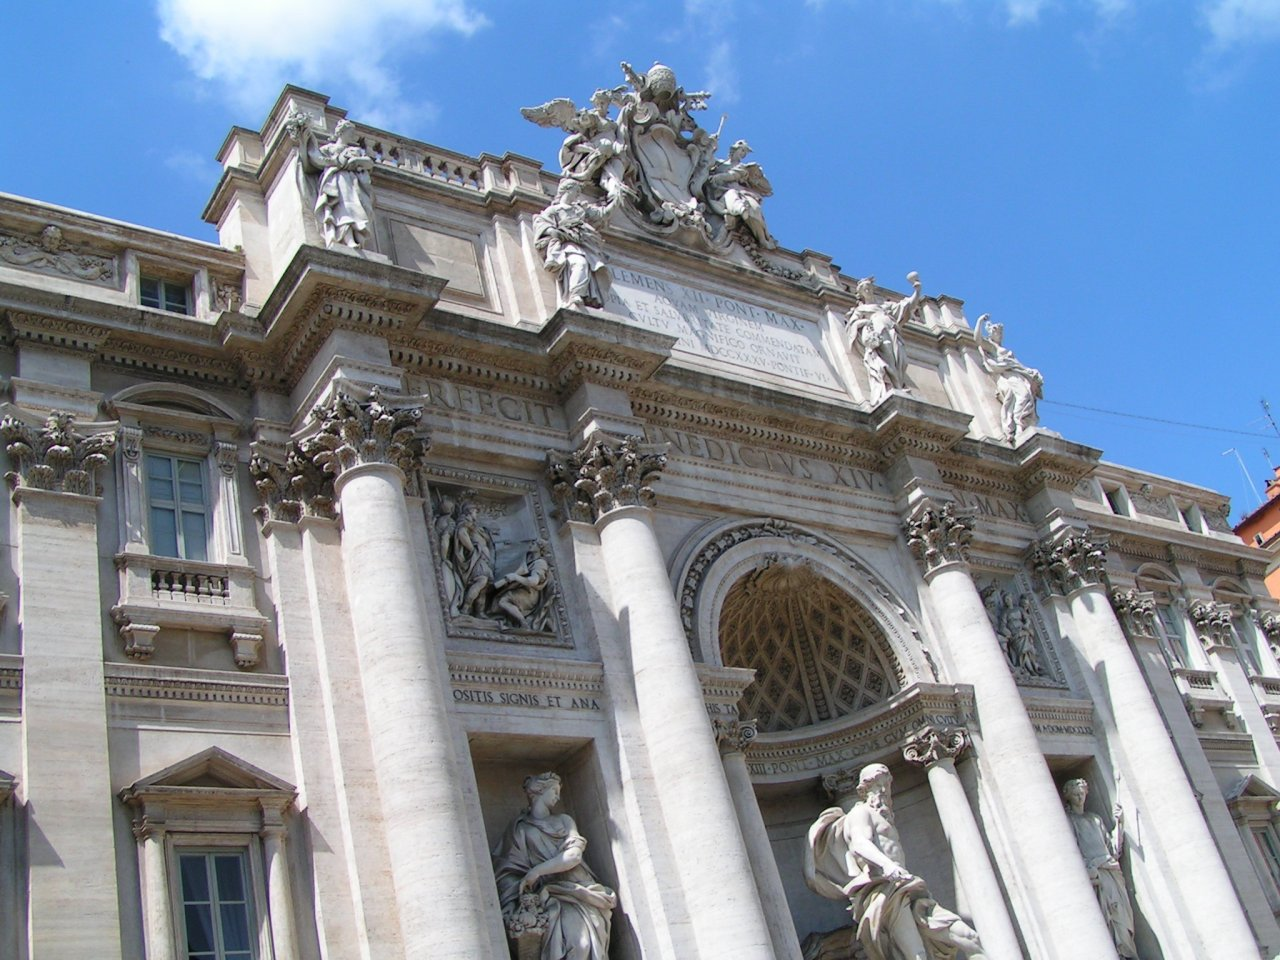 Fontana di Trevi, Rome Attractions, Best Places to visit in Rome 2